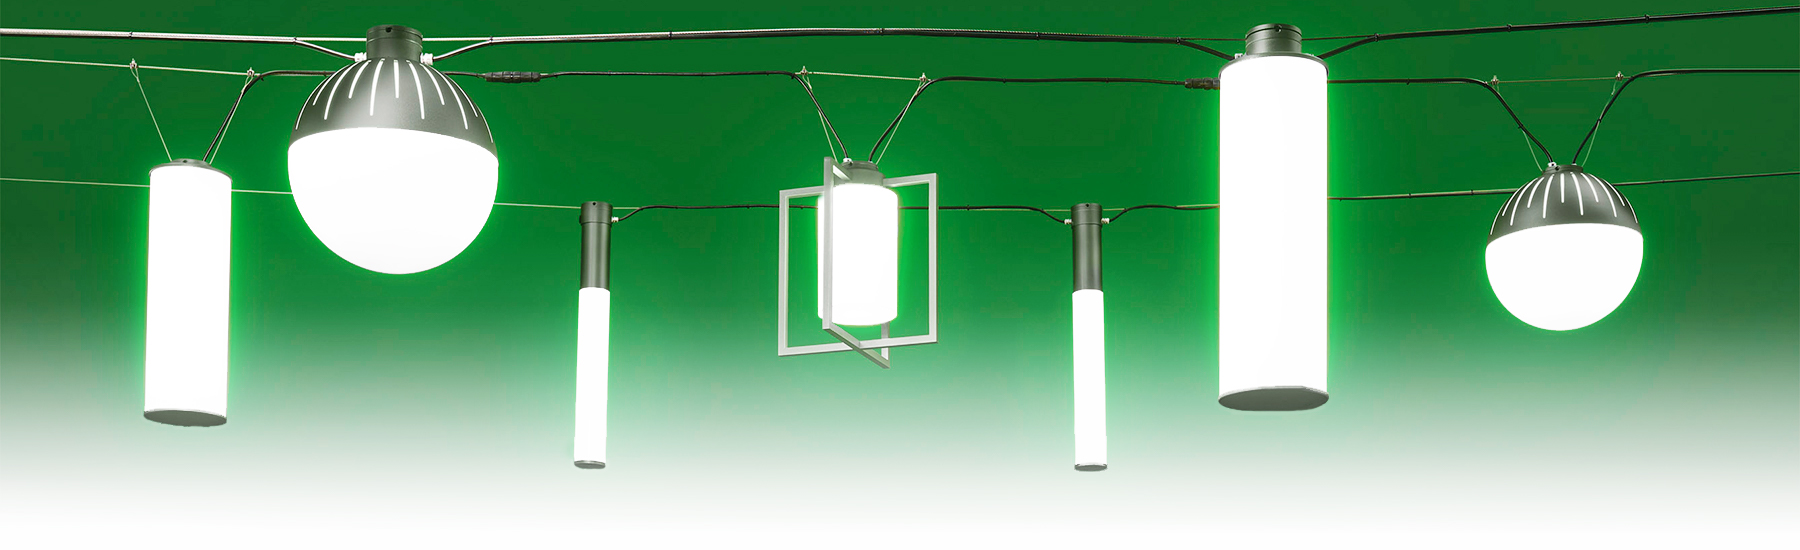 Outdoor pendant lighting creates eye catching catenary designs